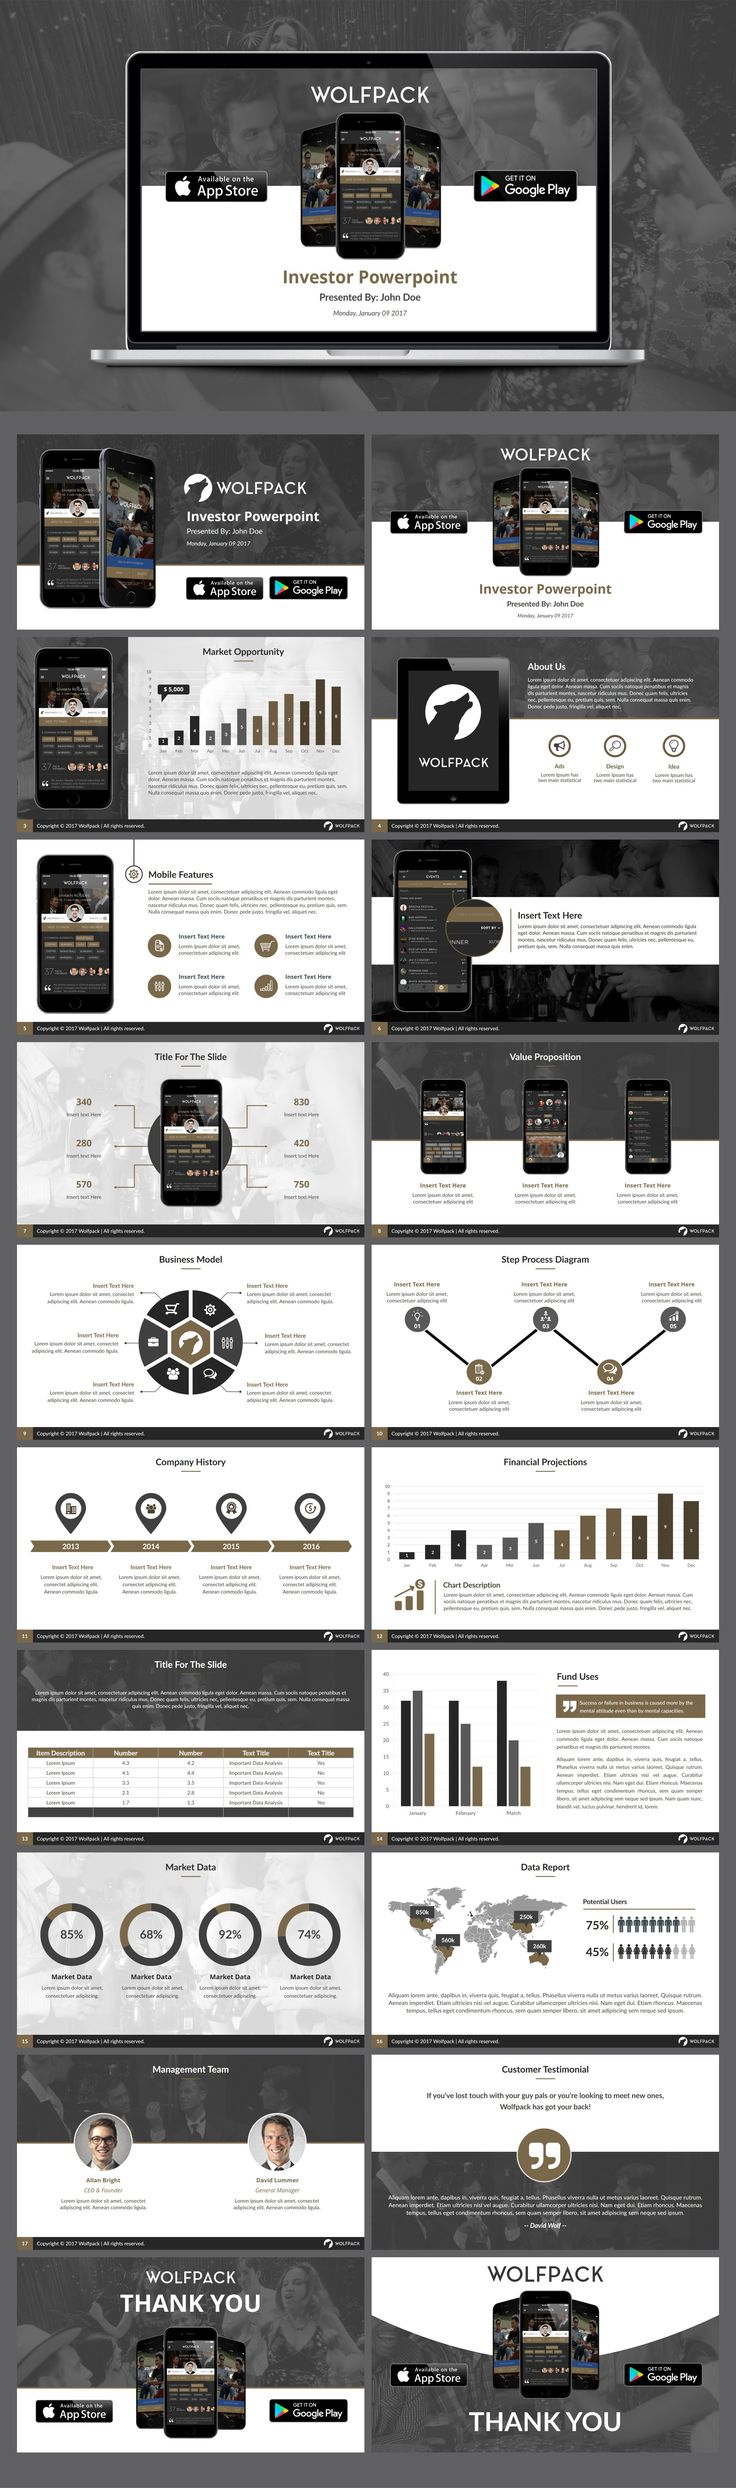 Best PowerPoint Images By Nicole Esche On Pinterest - Fresh powerpoint pitch book template concept